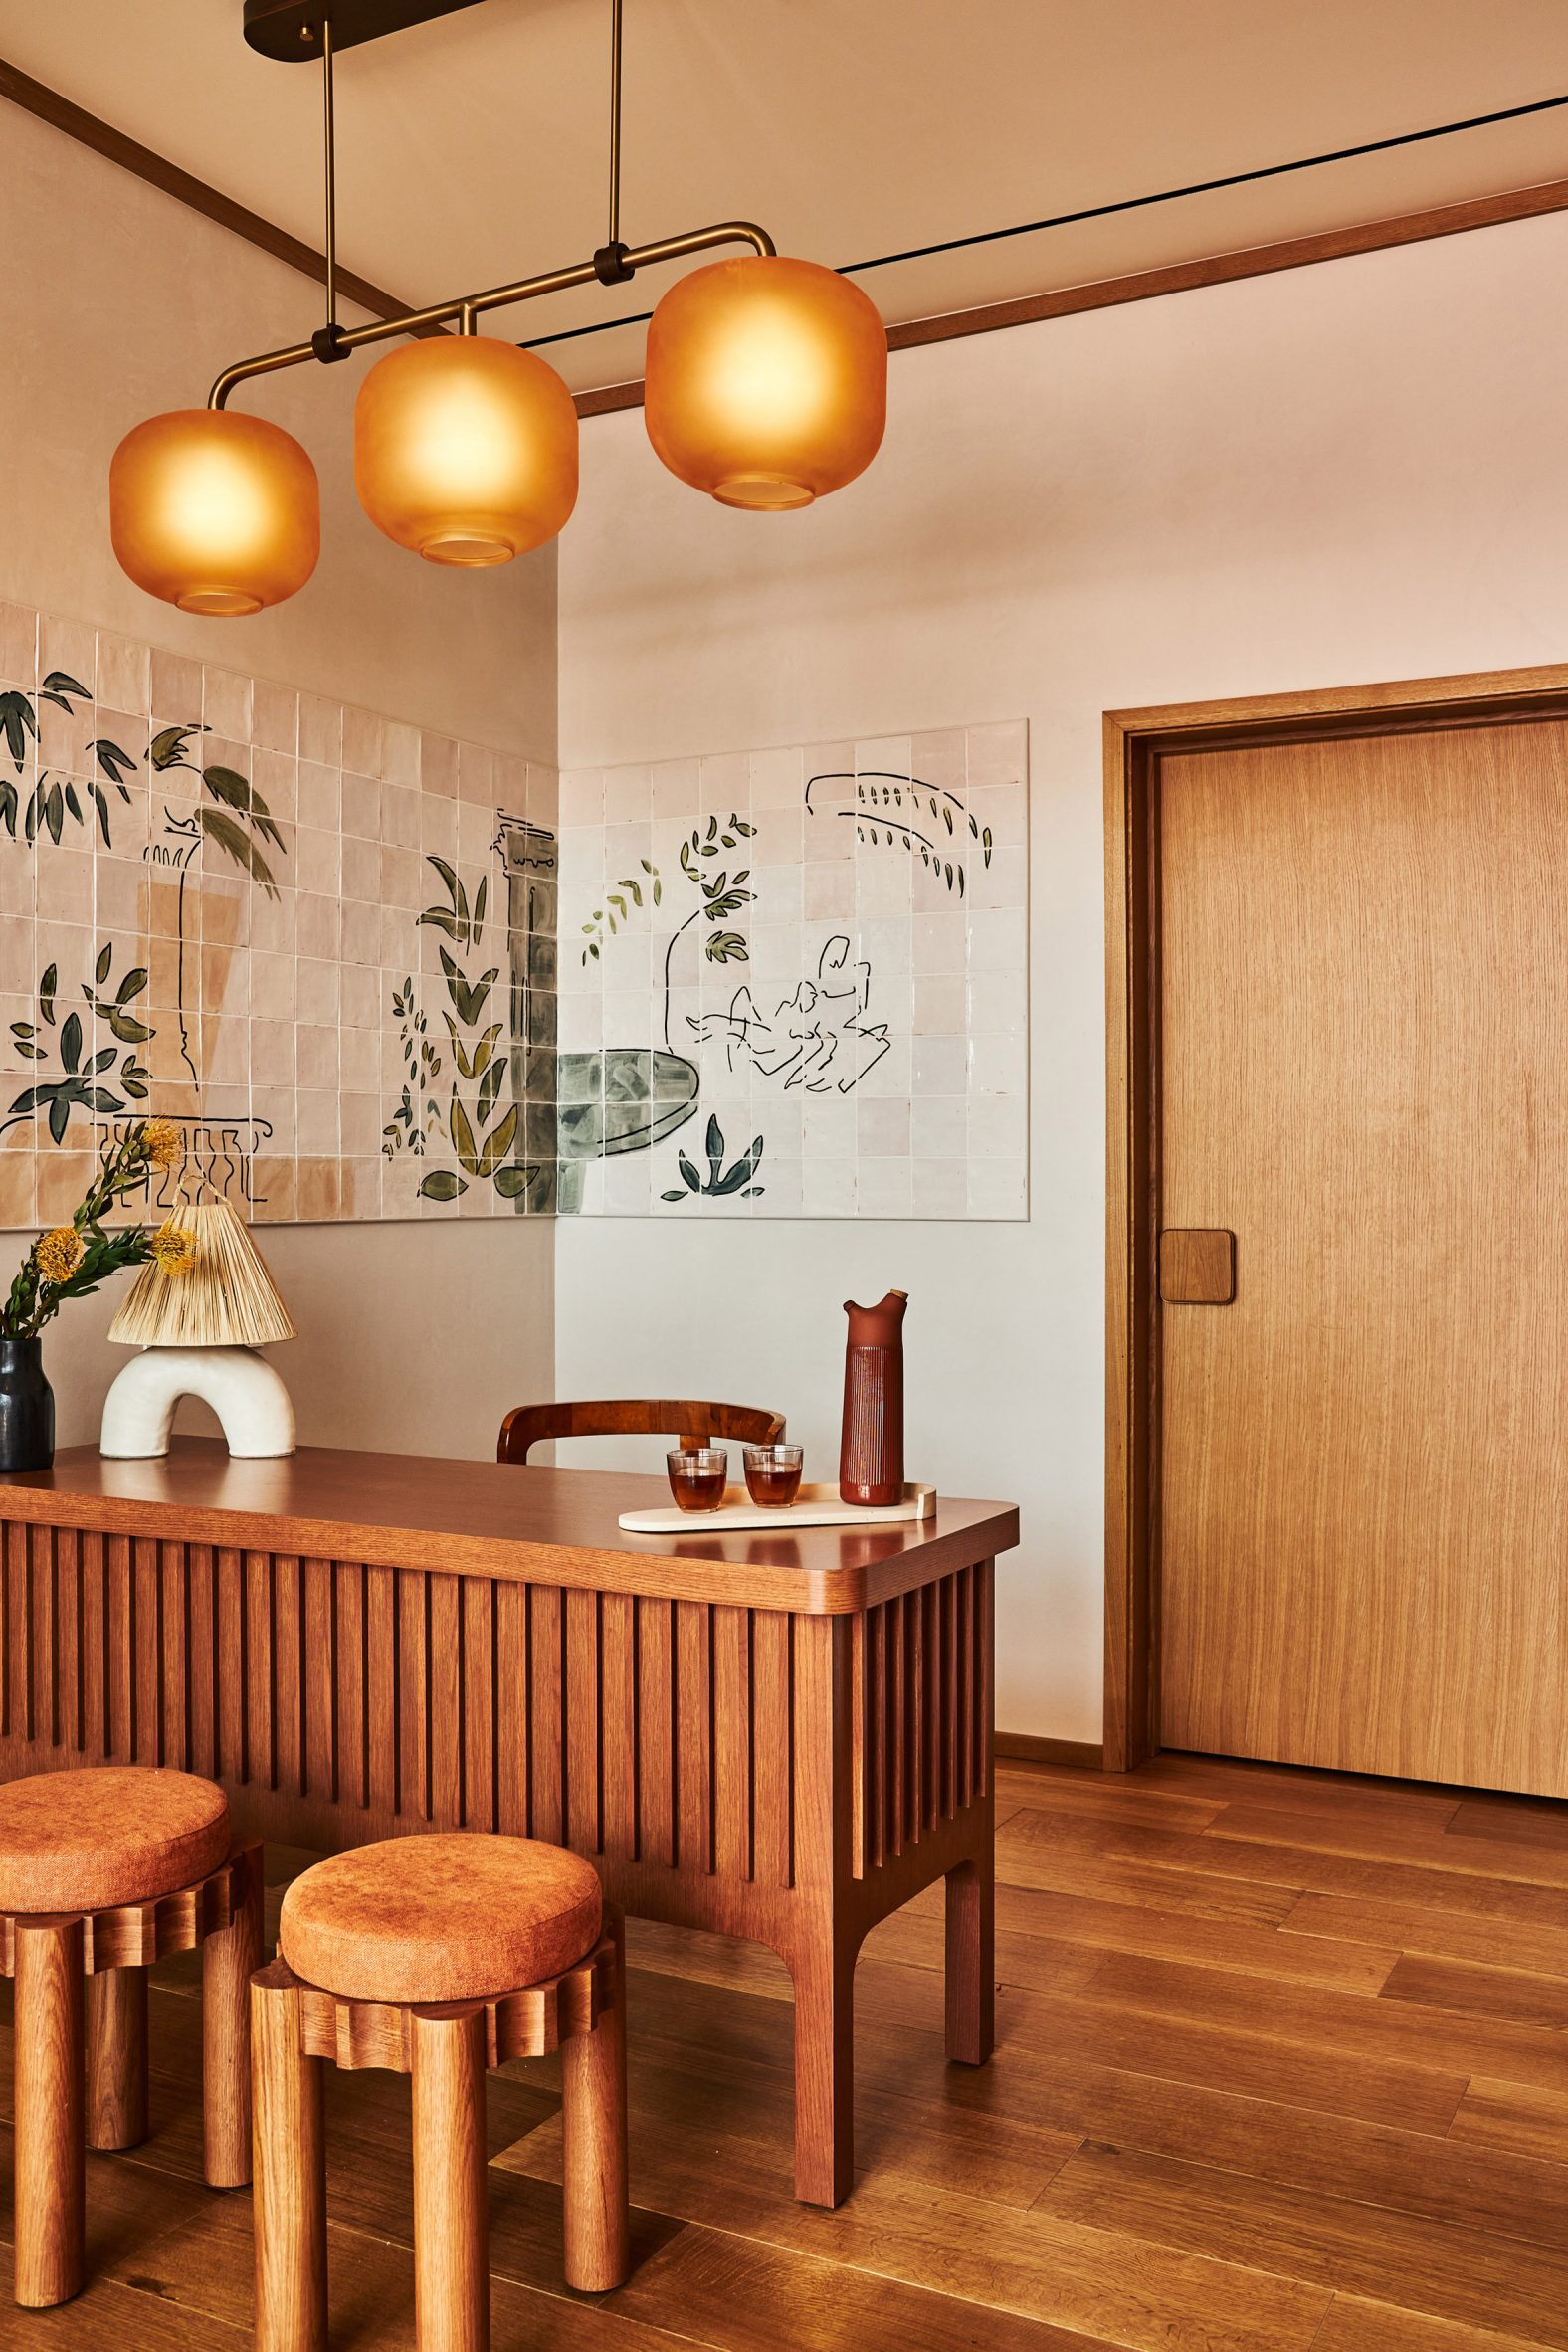 Reception area with tile mural at Alsace LA hotel